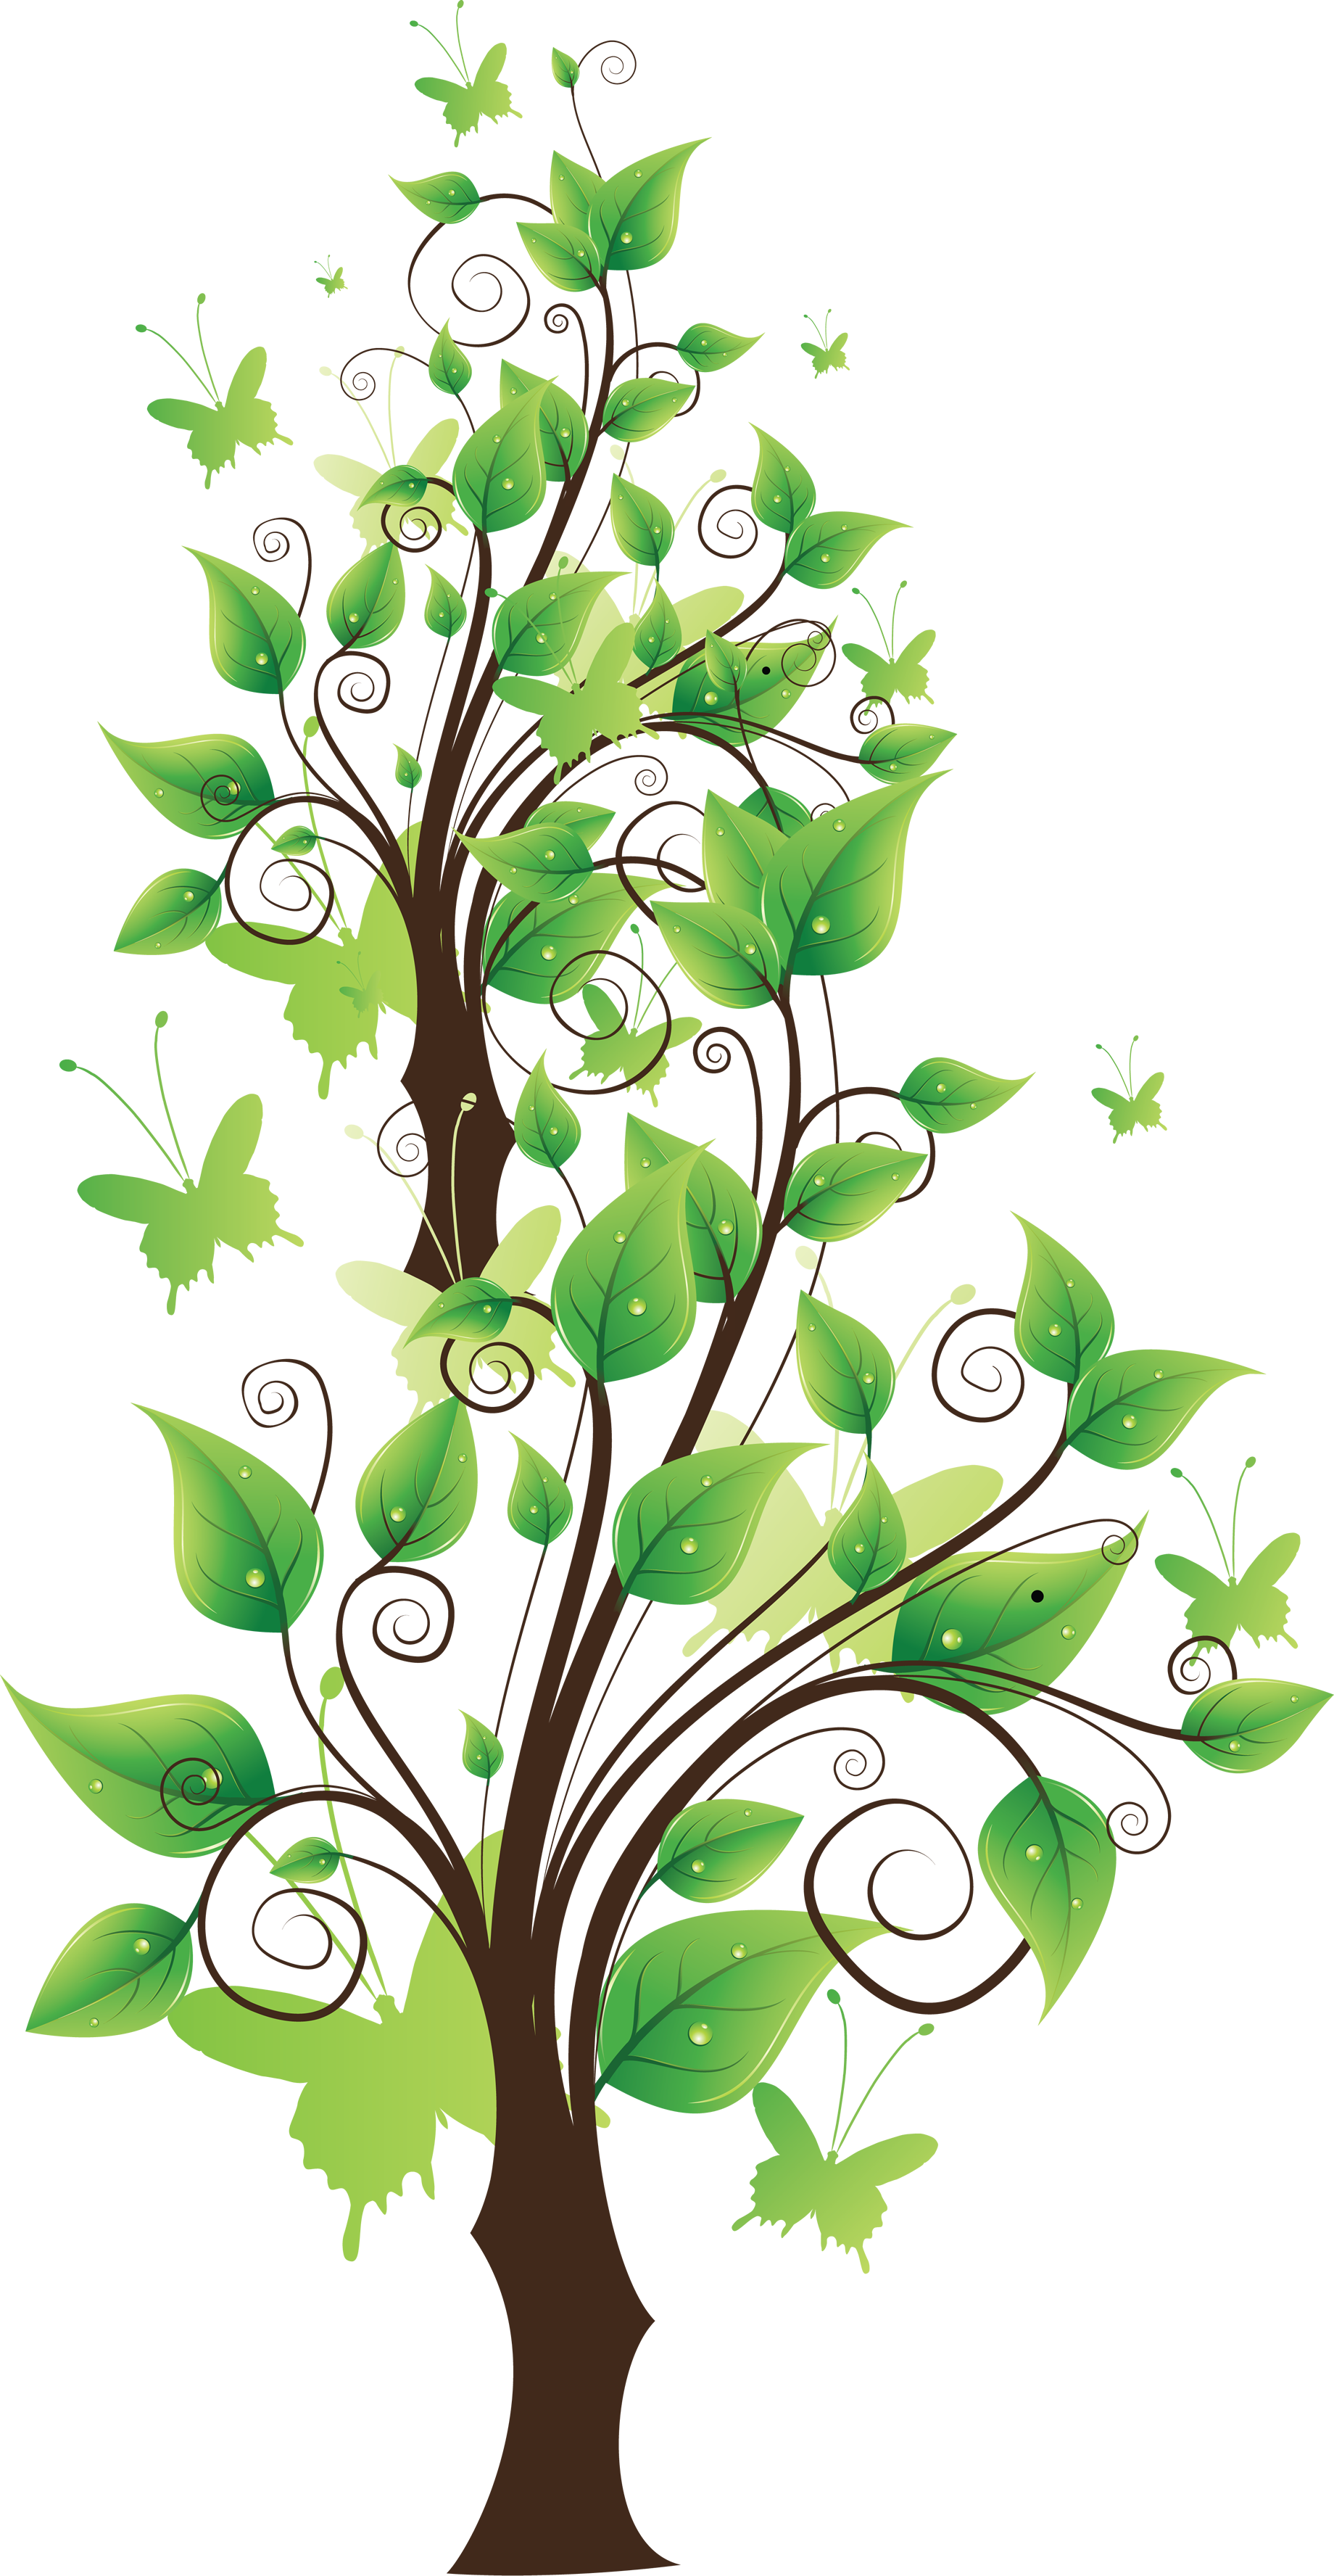 Parts of a tree clipart vector freeuse download Png tree clipart - ClipartFest vector freeuse download